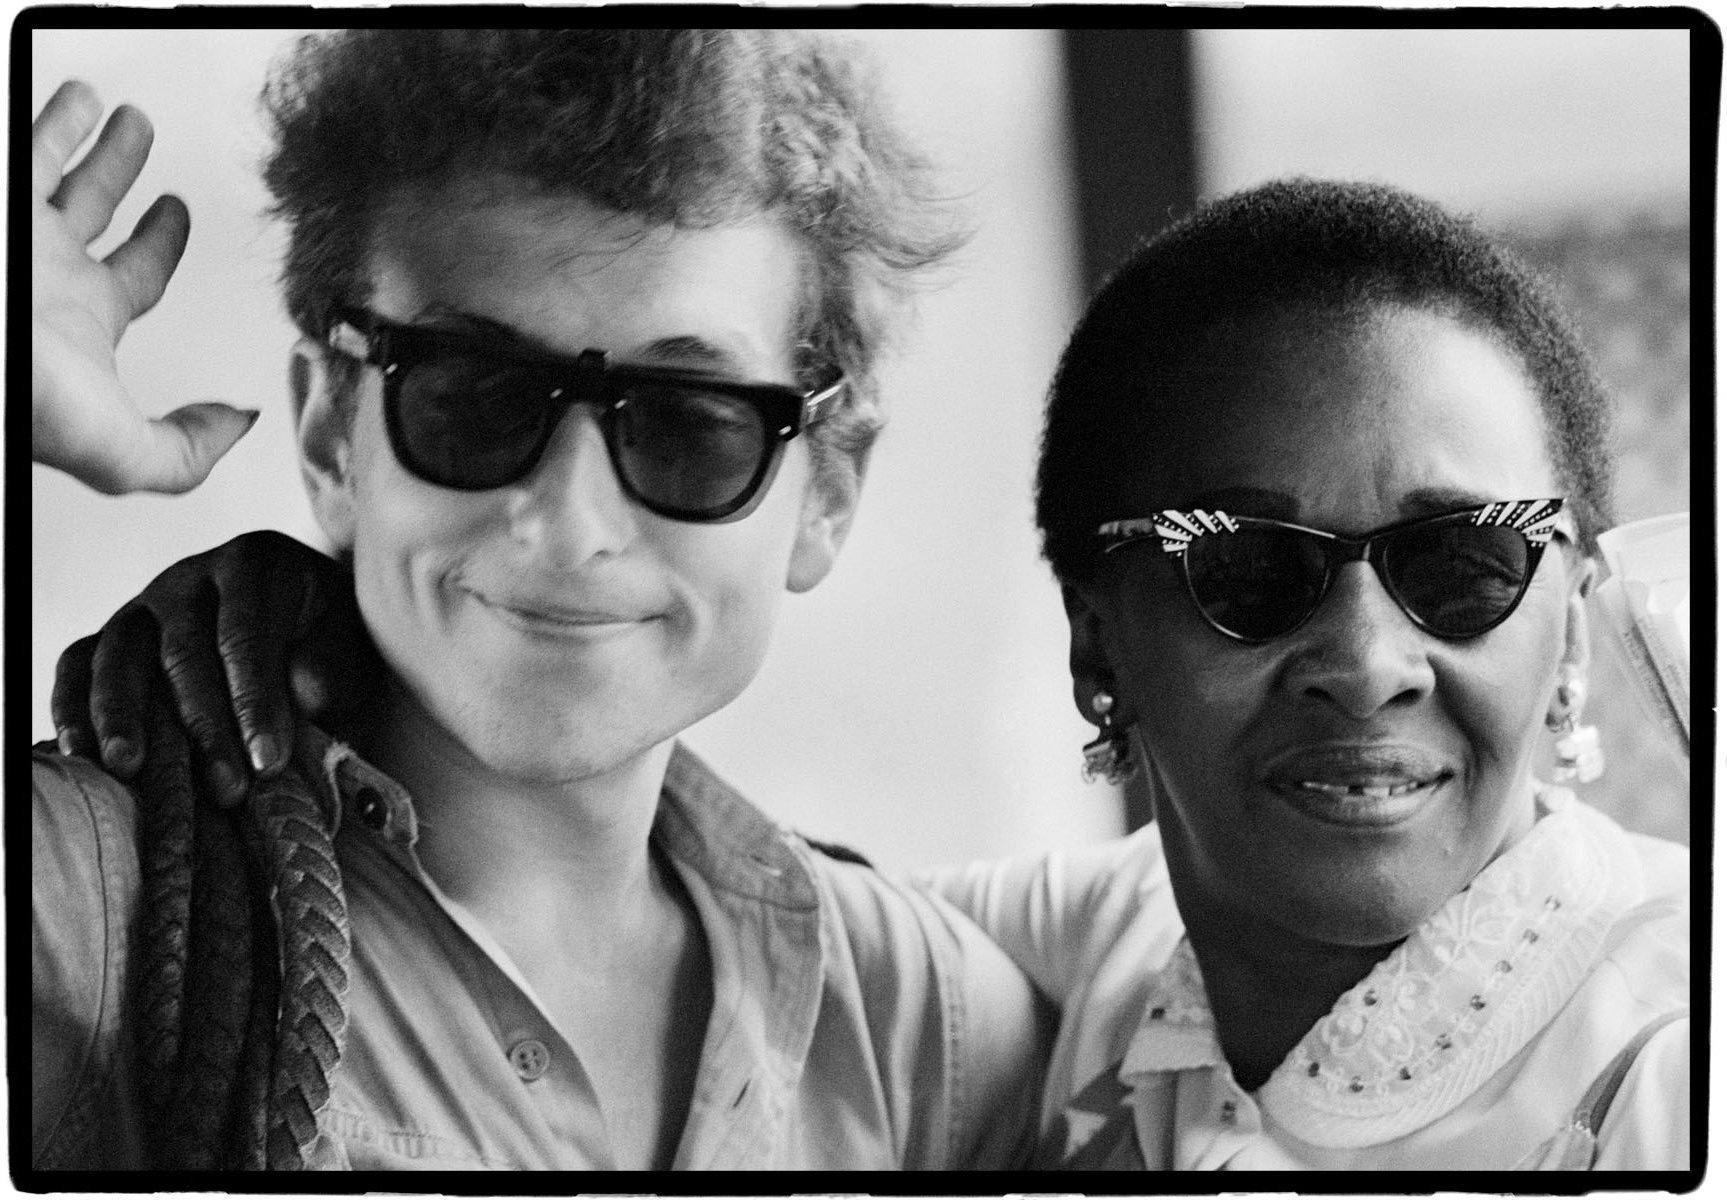 Victoria was a blues singer / songwriter and a mentor to young Dylan. She had her own recording company.